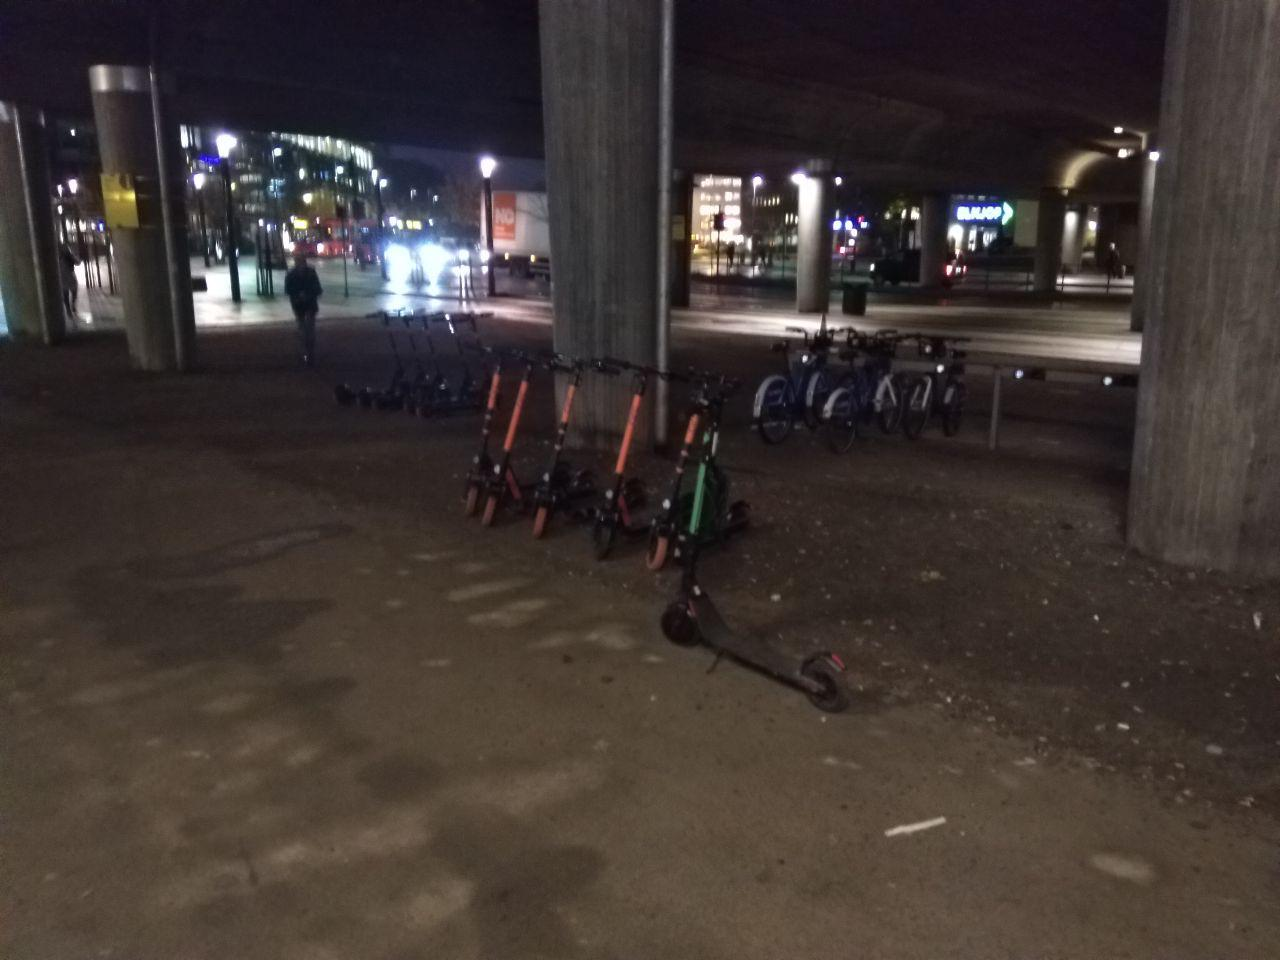 E-scooters standing in line under a bridge trying to become a big trend this year. It is dark enda